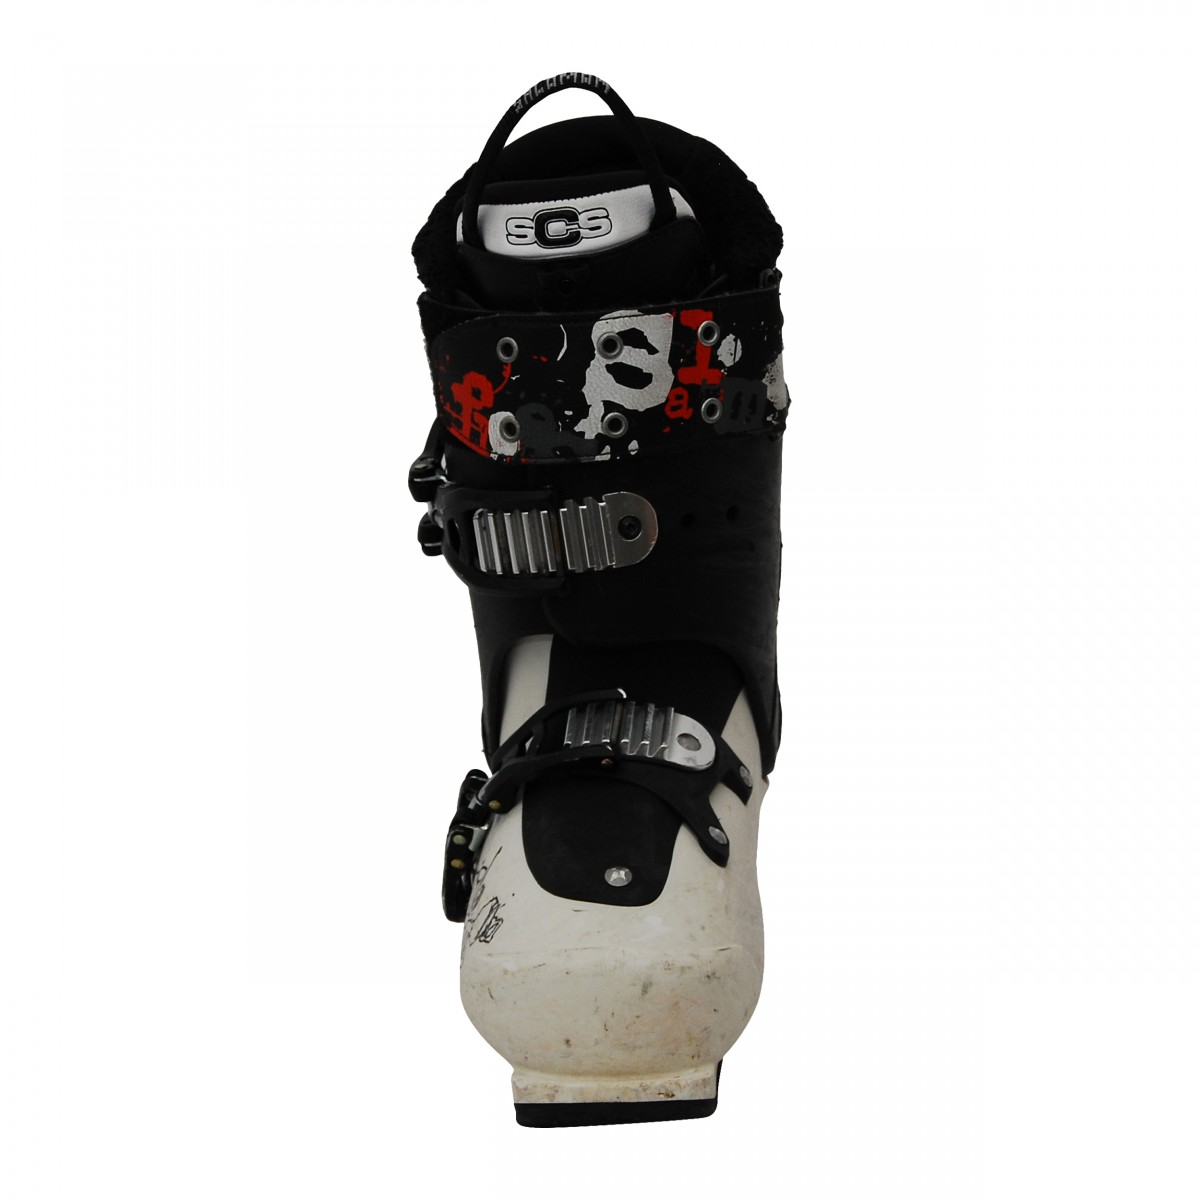 Salomon SPK blackwhite chaussures de ski d'occasion